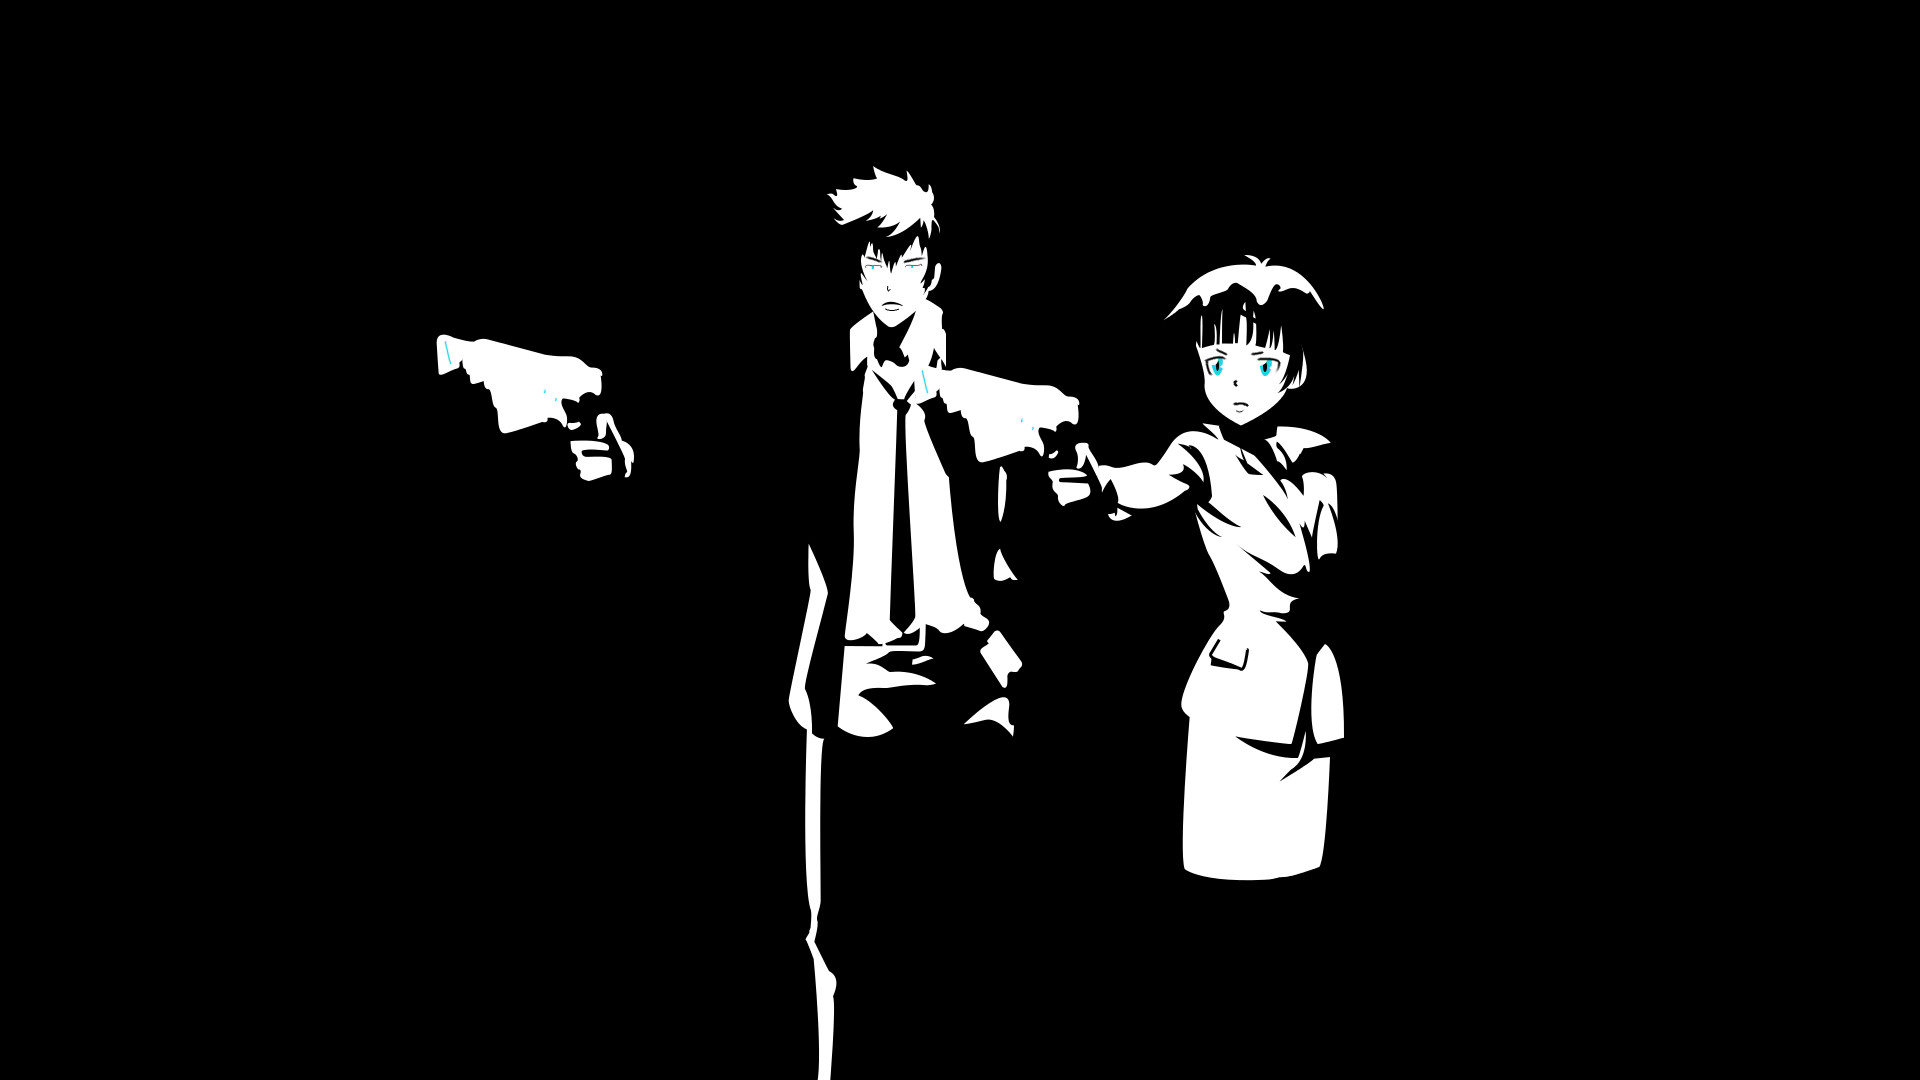 … psycho p anime wallpapers hd 36 photos …